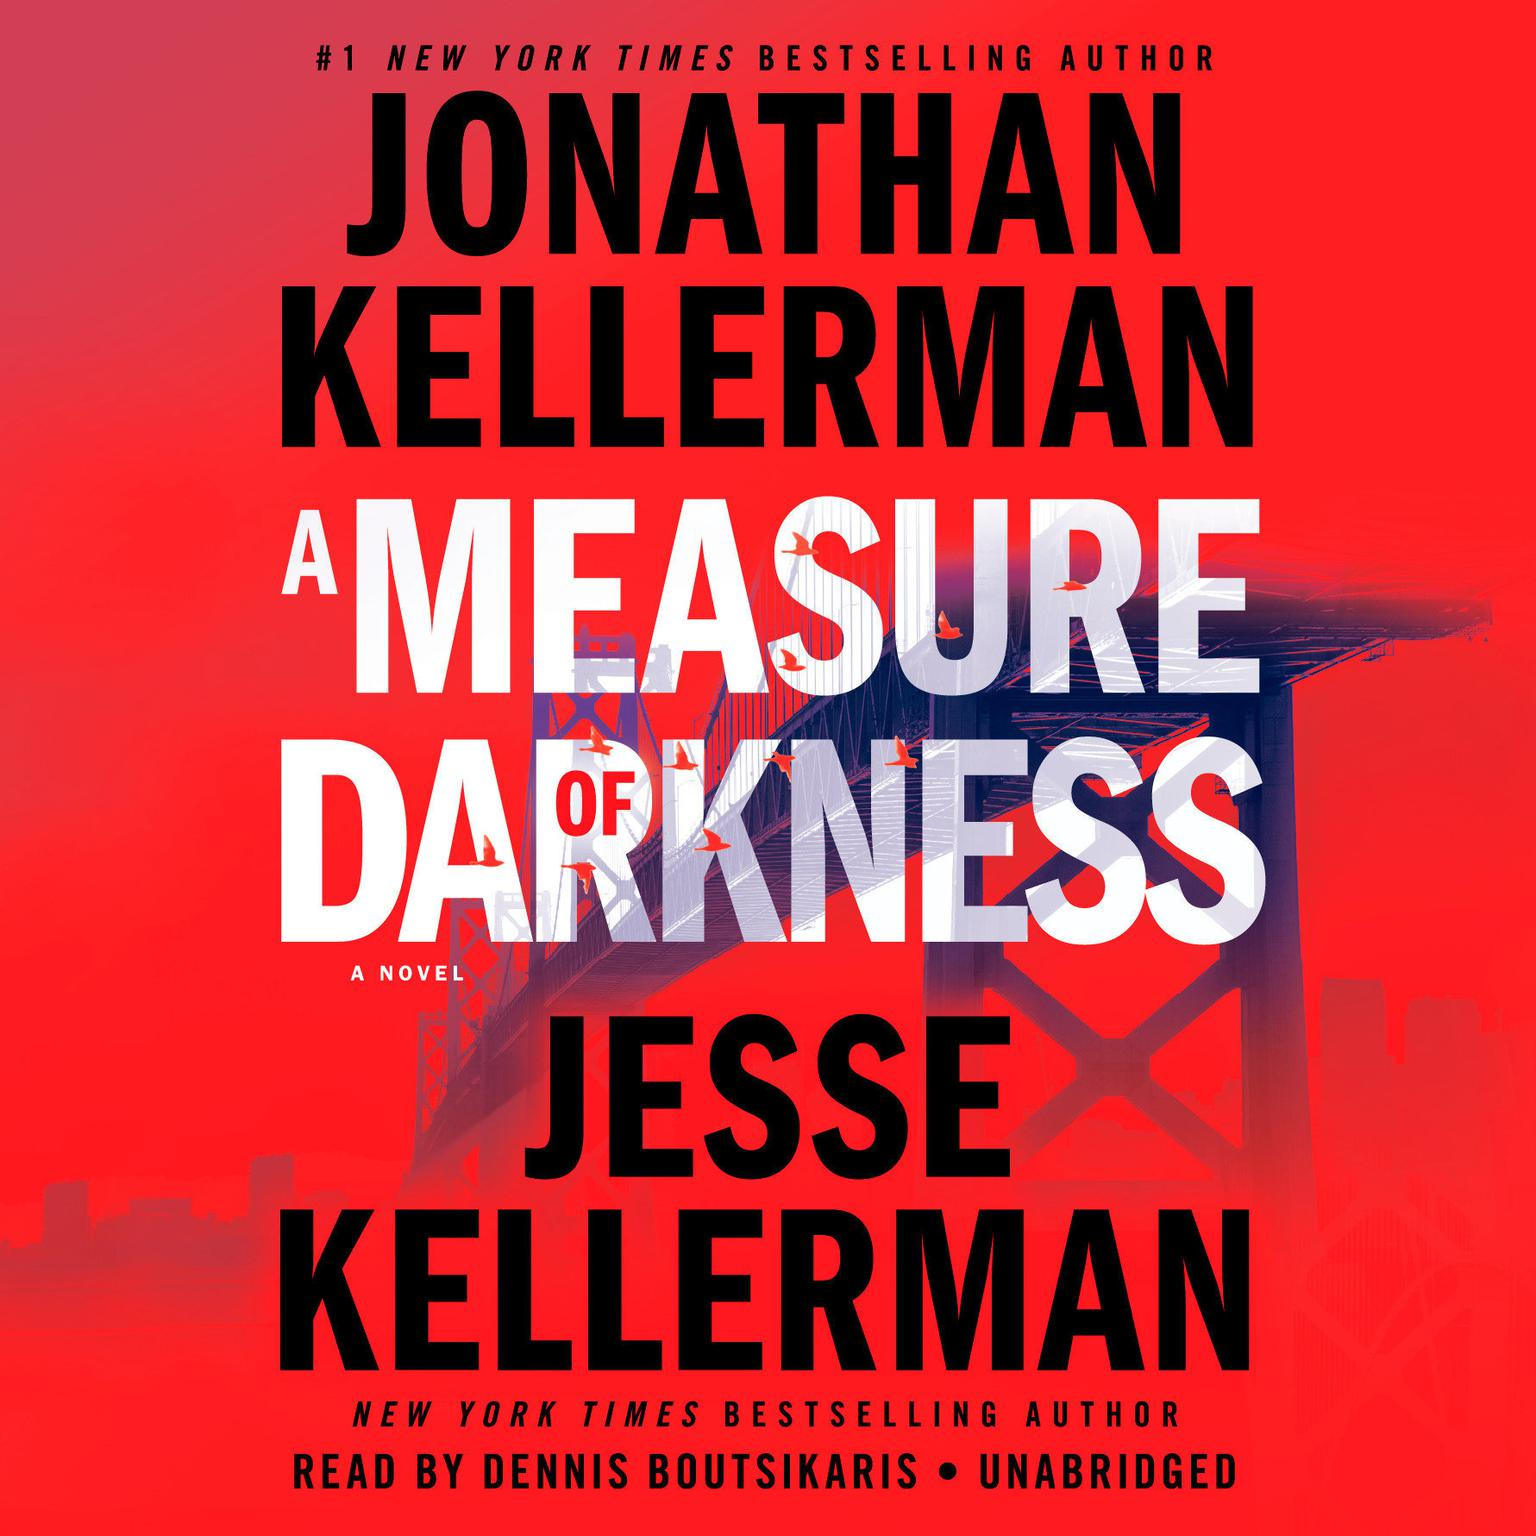 Printable A Measure of Darkness: A Novel Audiobook Cover Art